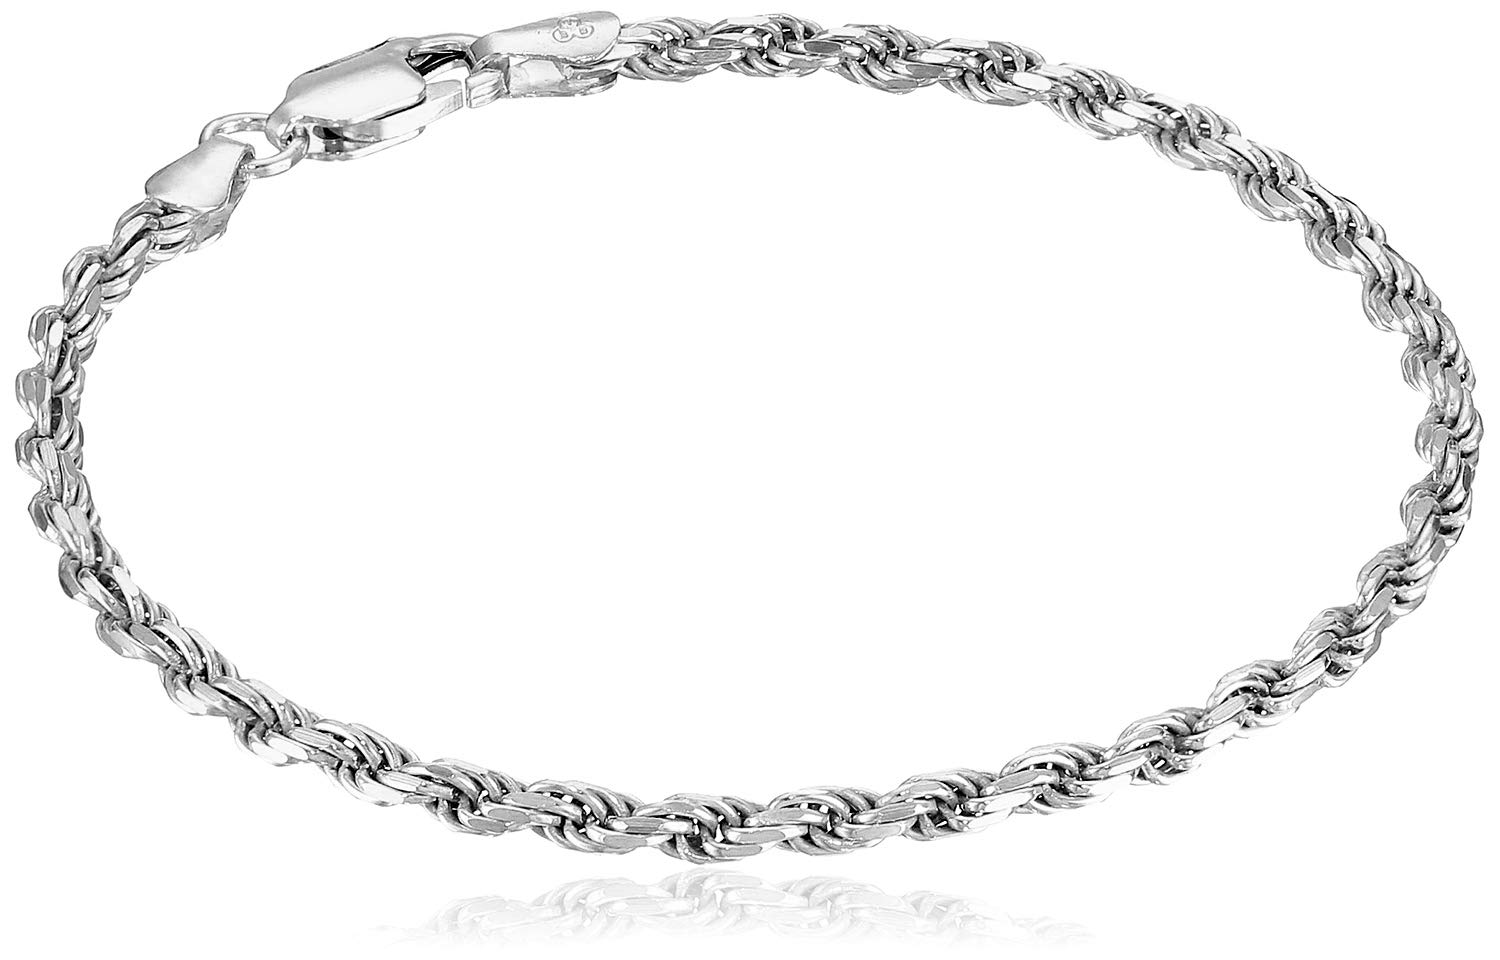 Fine Bracelets Sporting 925 Sterling Silver Chain Link Charm Bracelet With 5 Charms With The Most Up-To-Date Equipment And Techniques